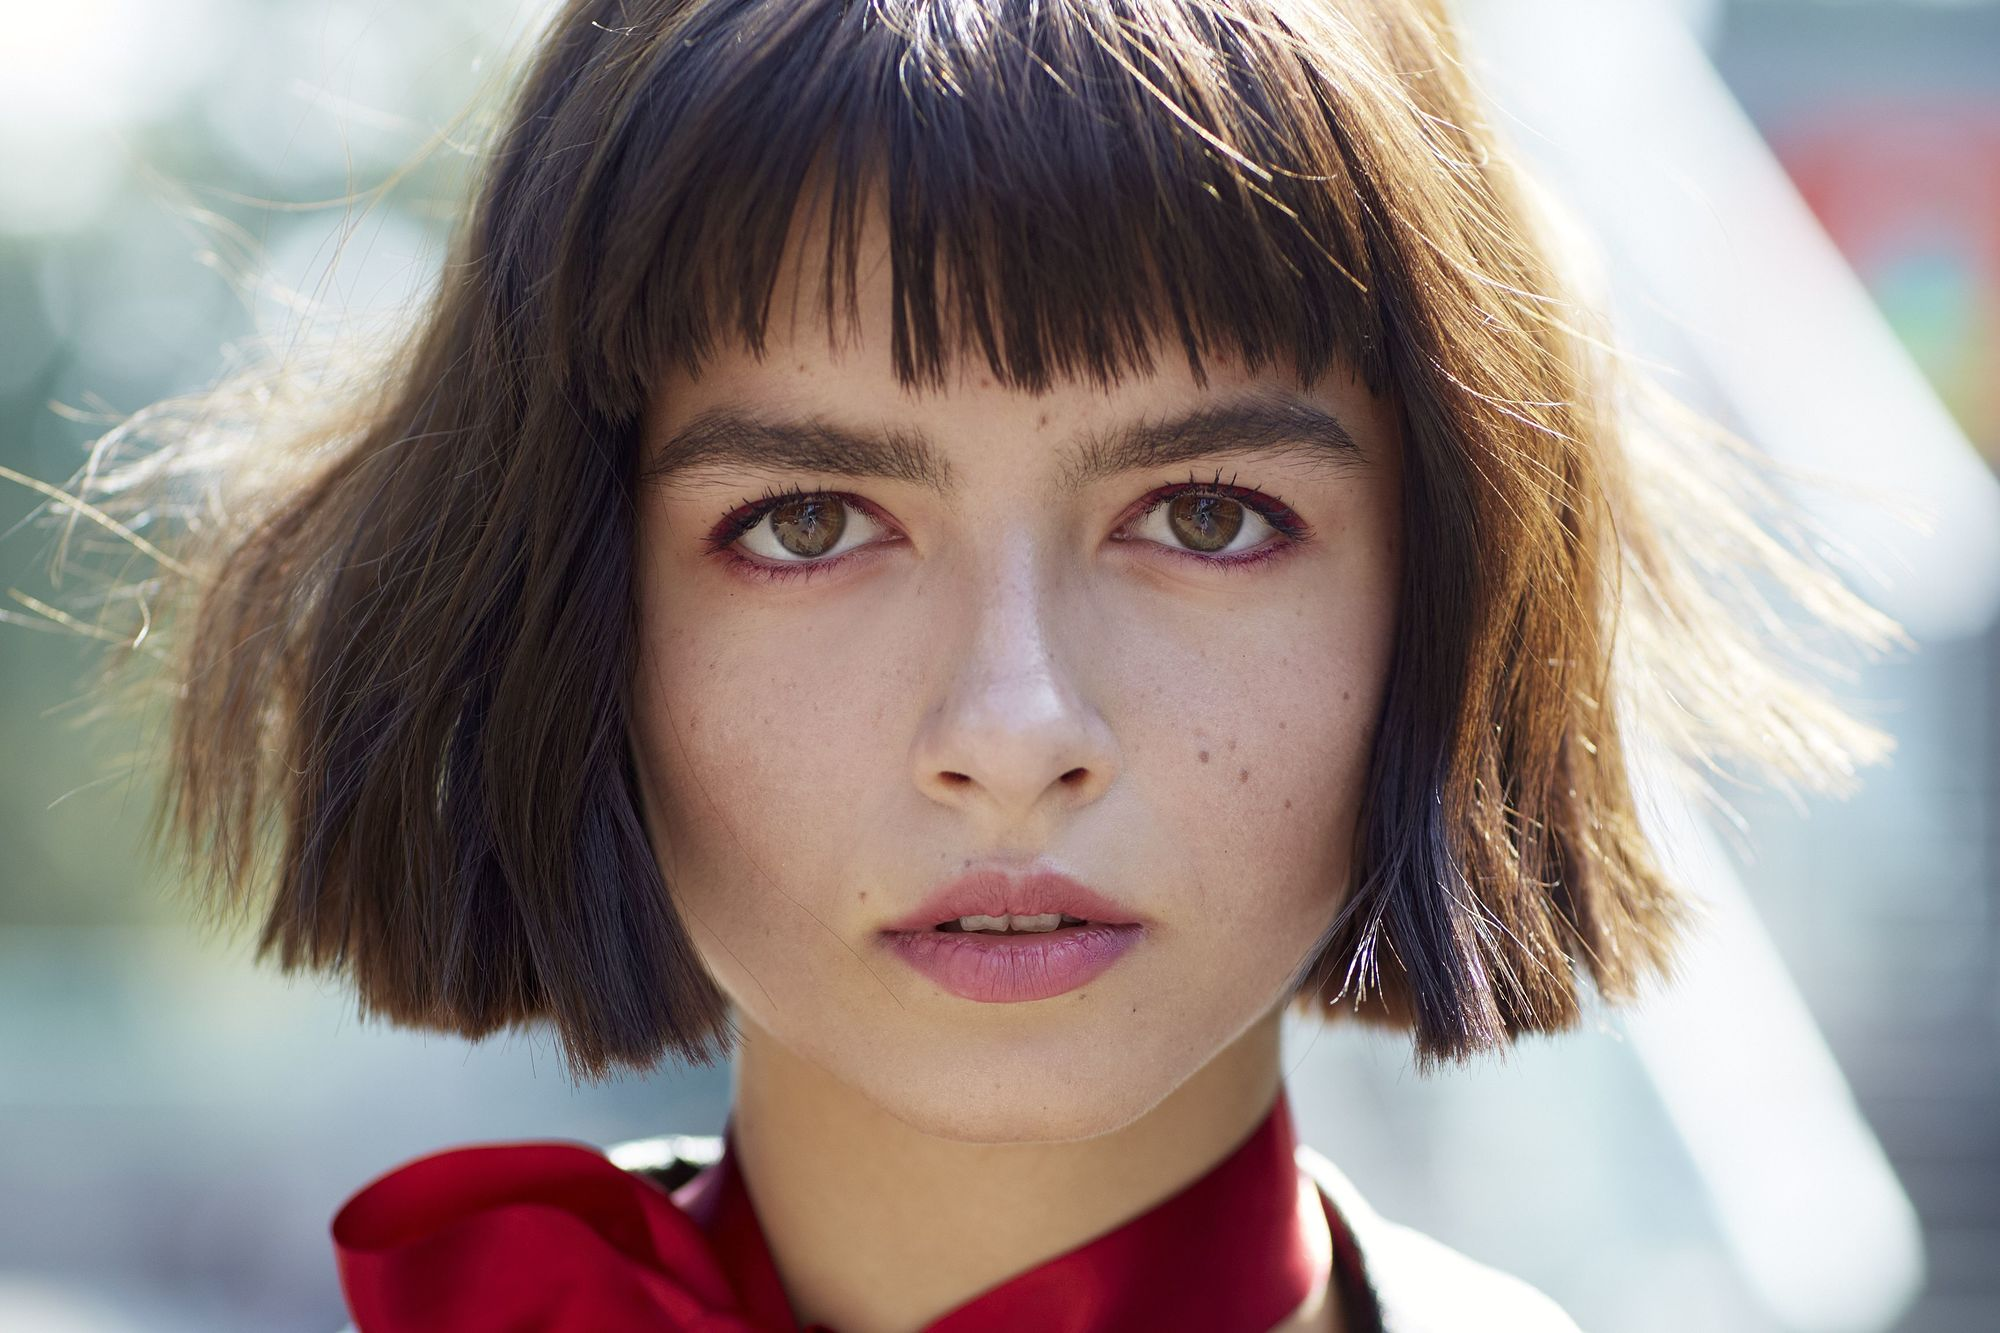 close up of street style model with short hair with fringe, wearing red scarf